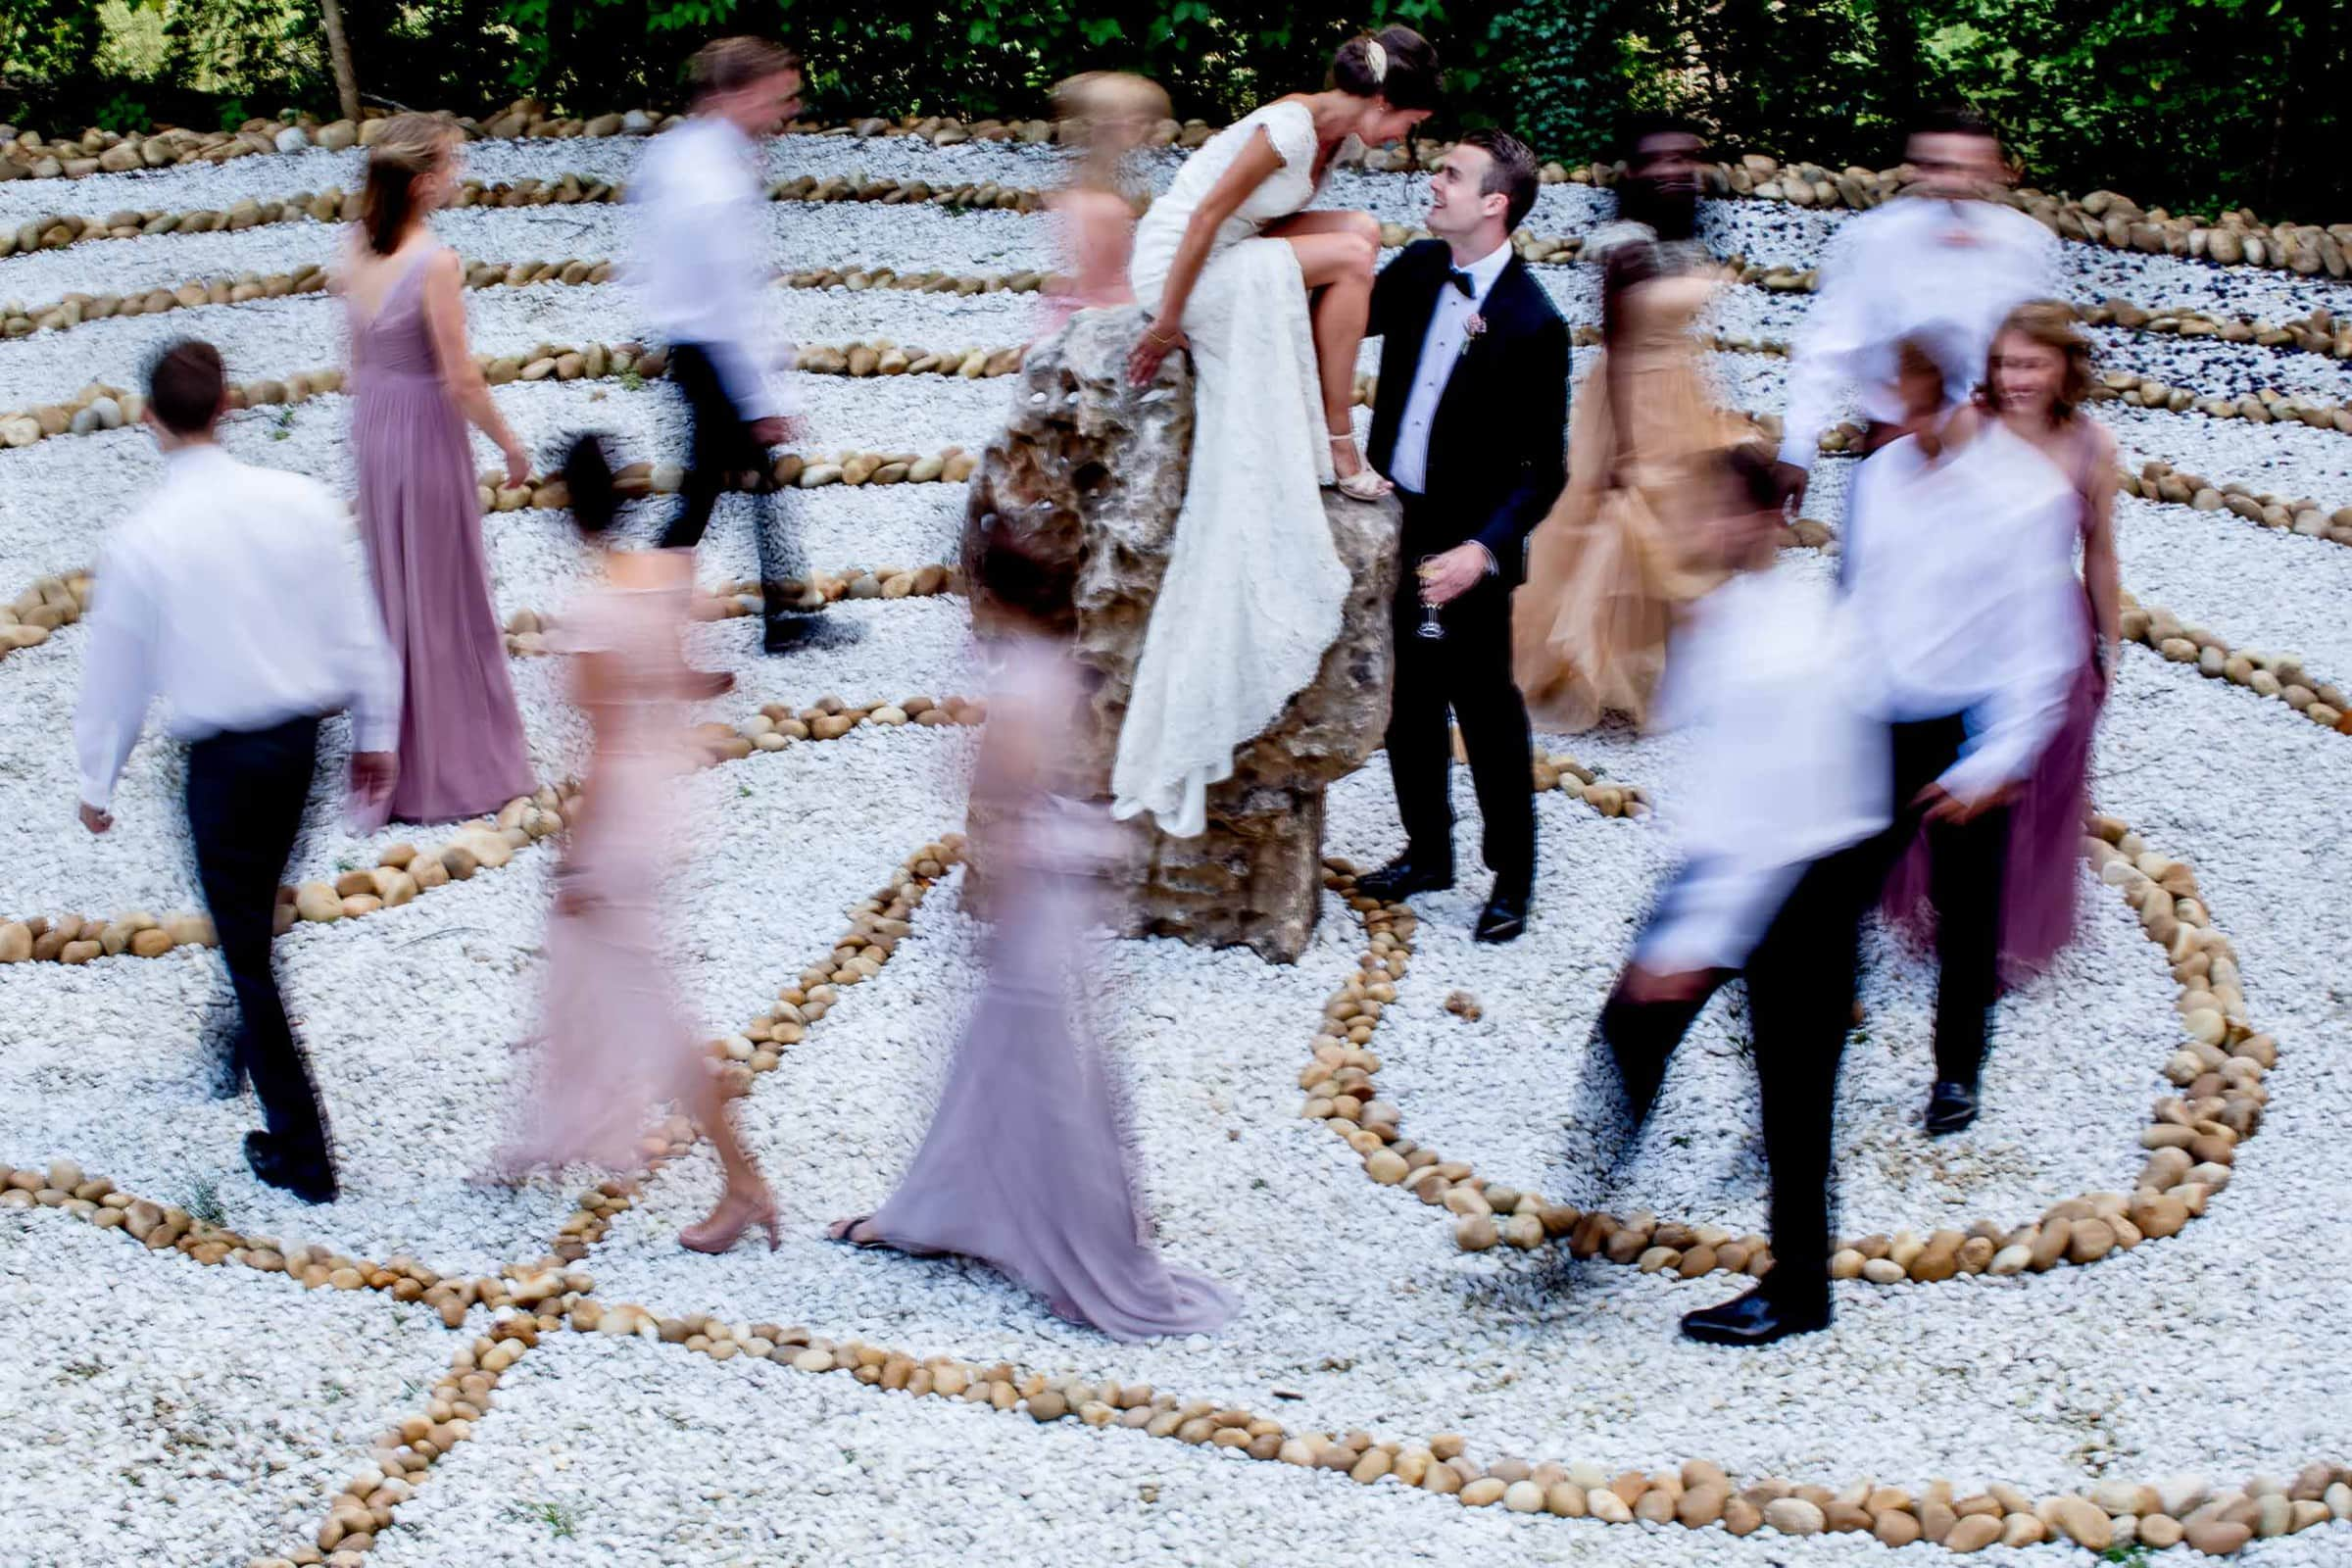 Friends circling in a blur around bride and groom in Cirque de Navacelles valley during their Chateau Zen wedding in the South of France near Montepelier.